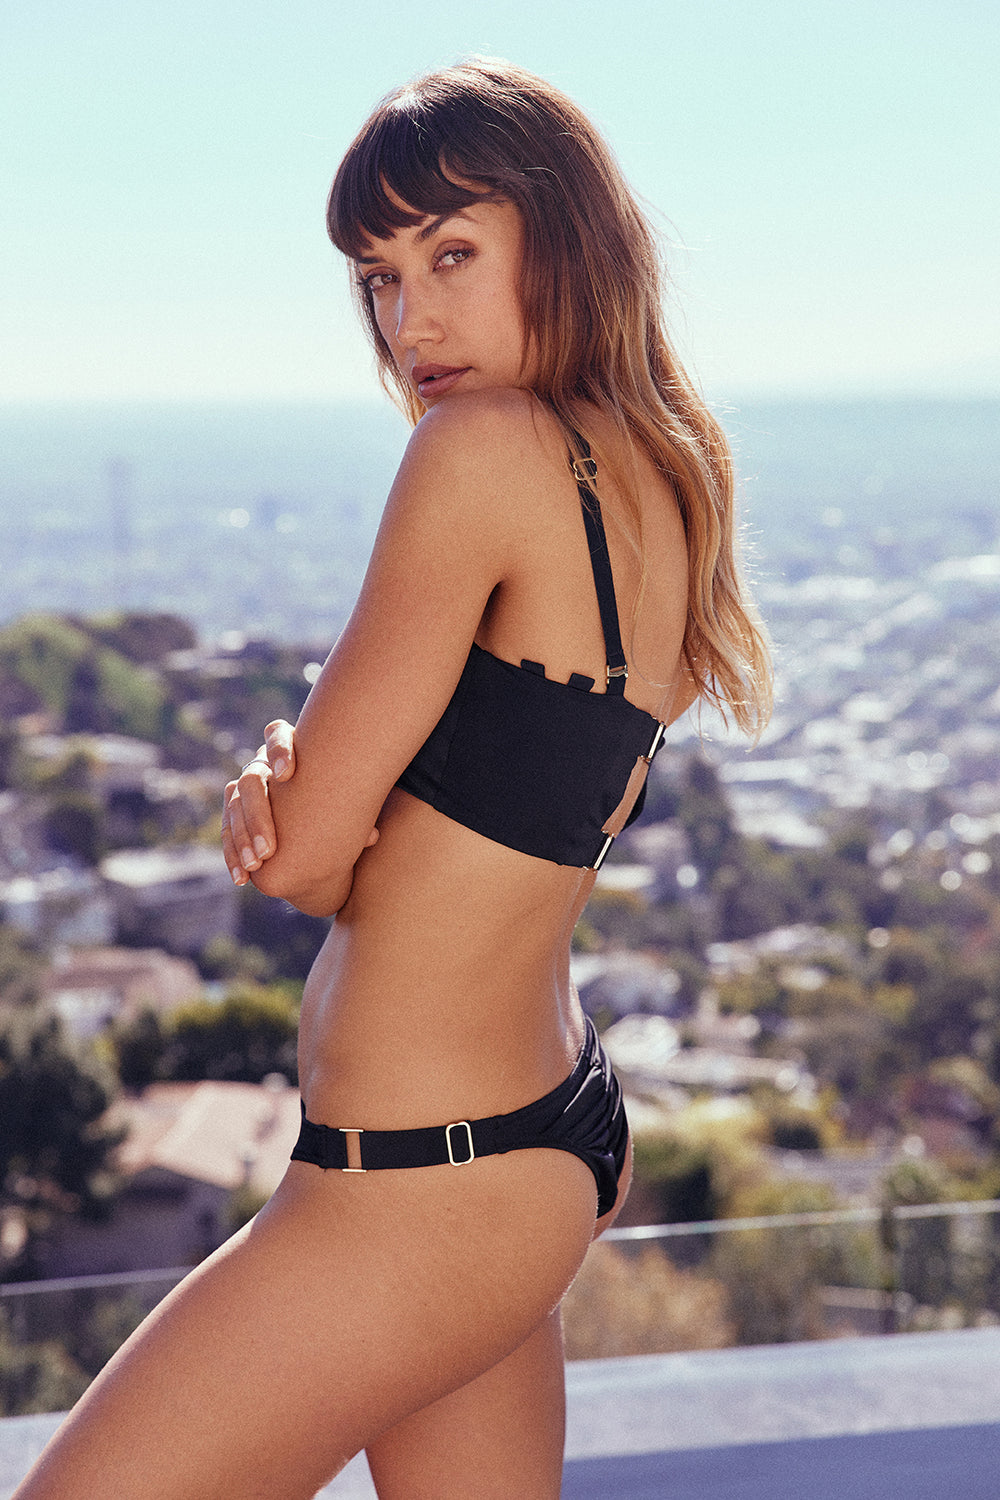 Black lace-up bandeau vintage inspired bikini top eco-friendly & sustainable fabric | Model is wearing S